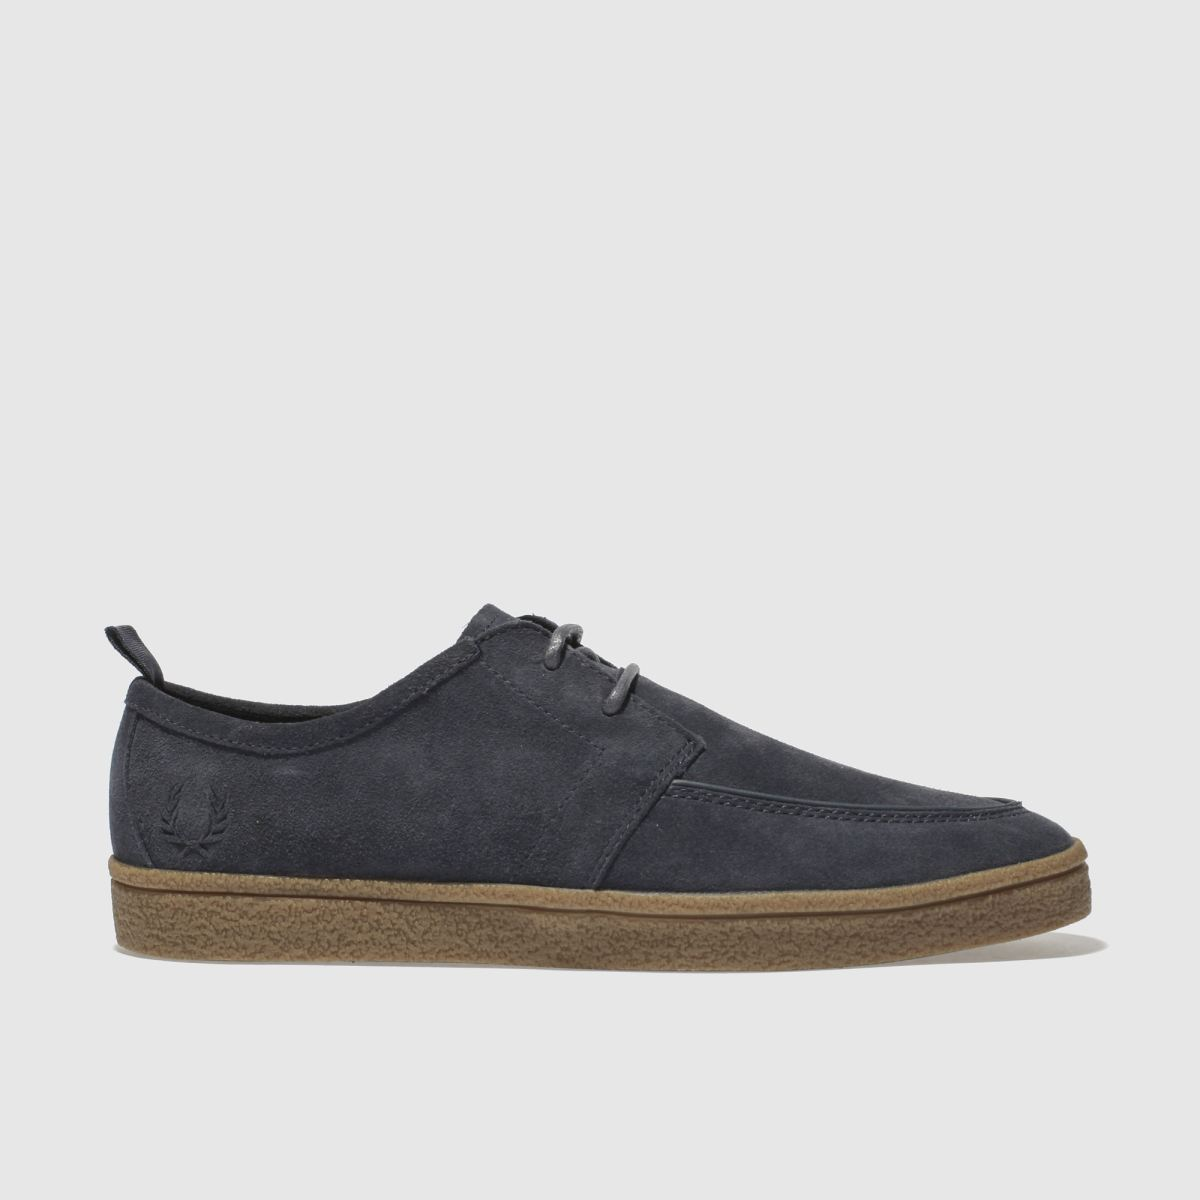 Fred Perry Dark Grey Shields Suede Crepe Shoes